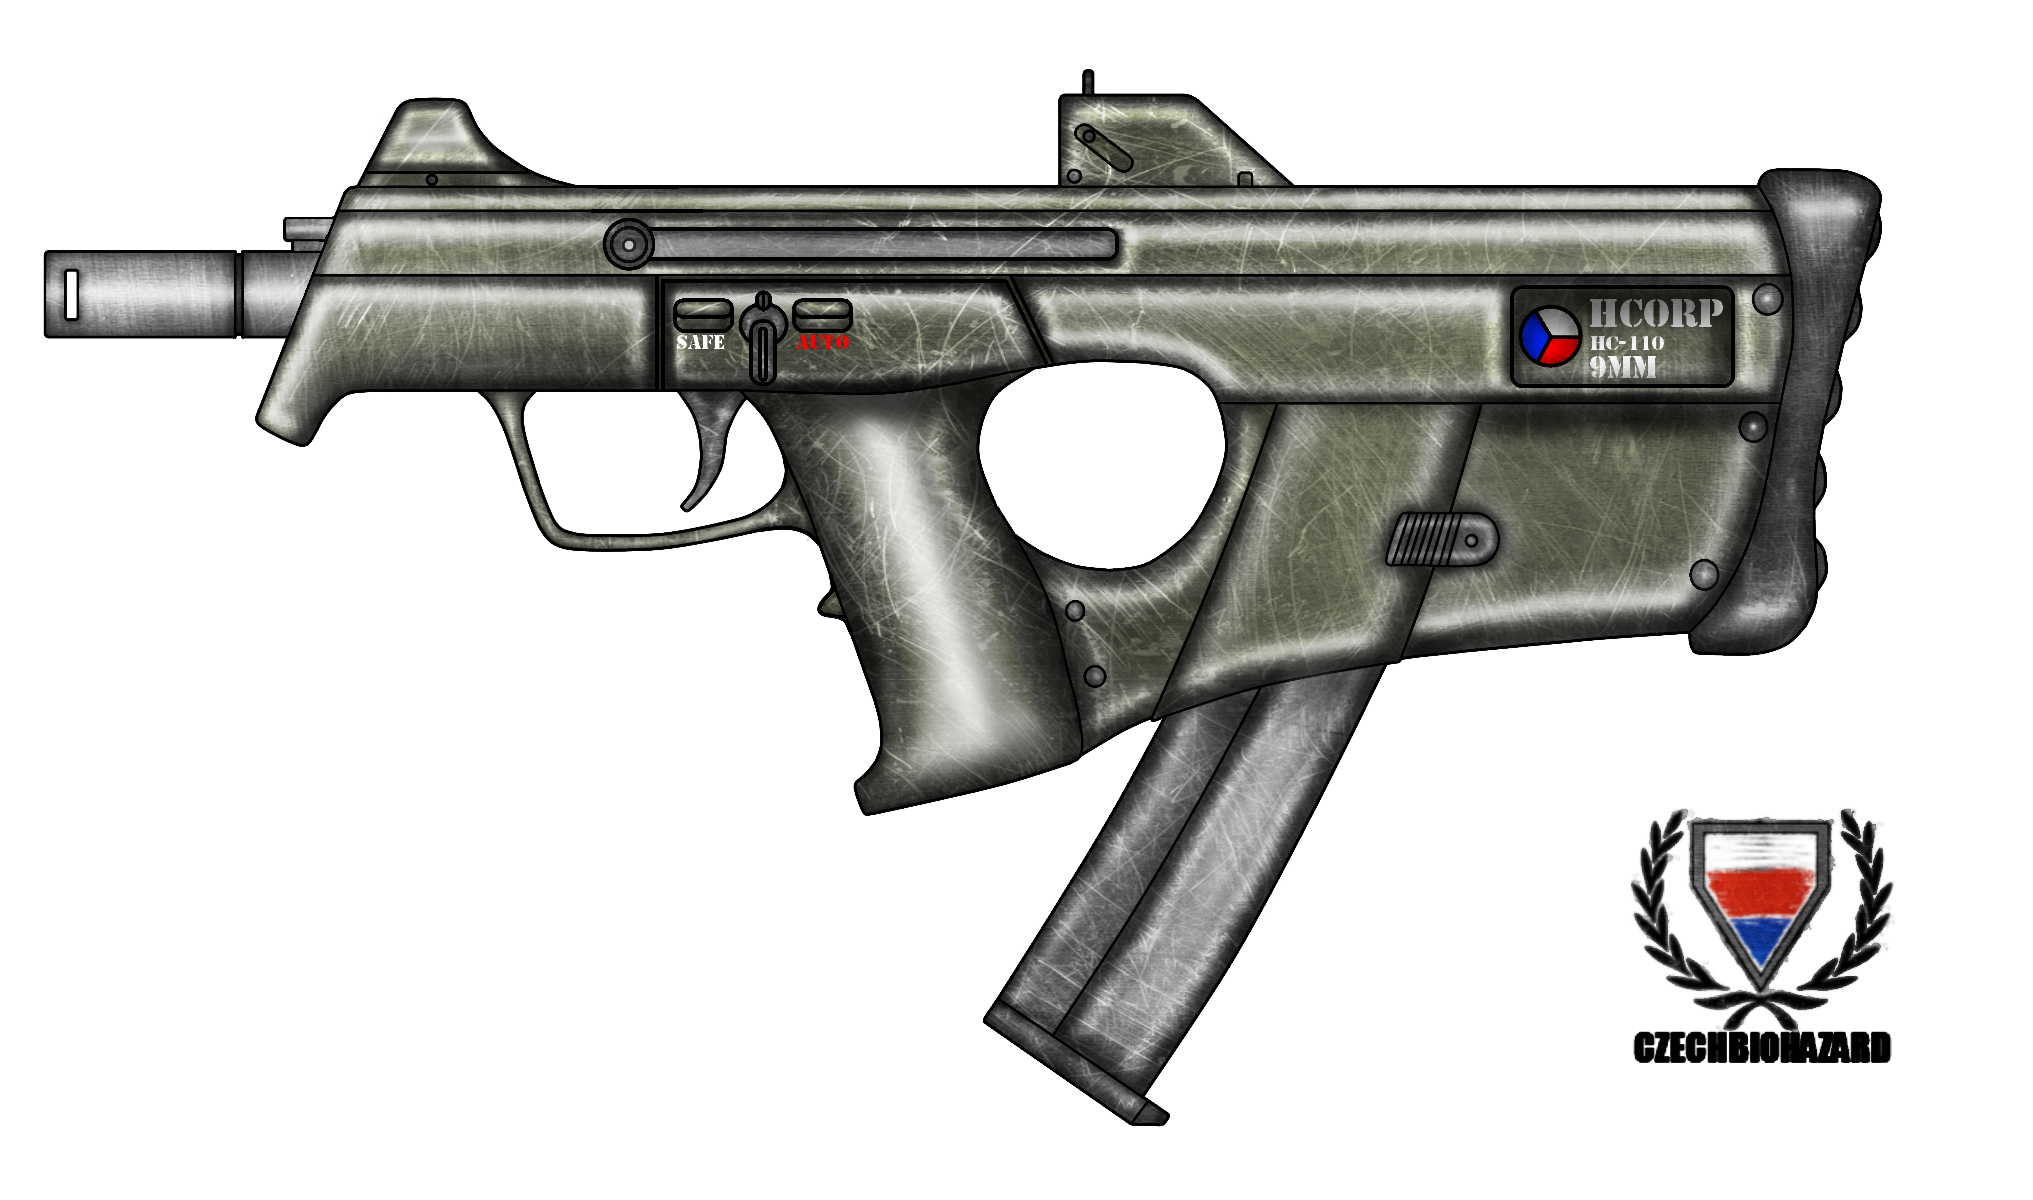 Drawn pistol submachine gun 110 Submachine Gun HC Submachine